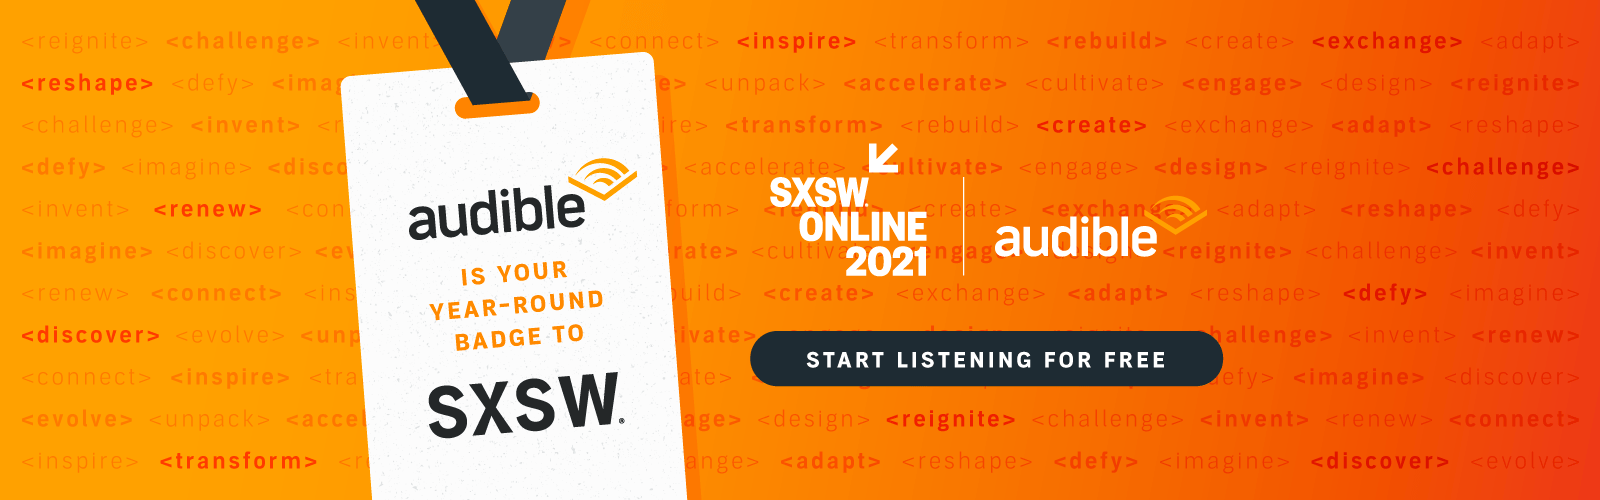 Audible at SXSW - Try Audible free for 30 days.